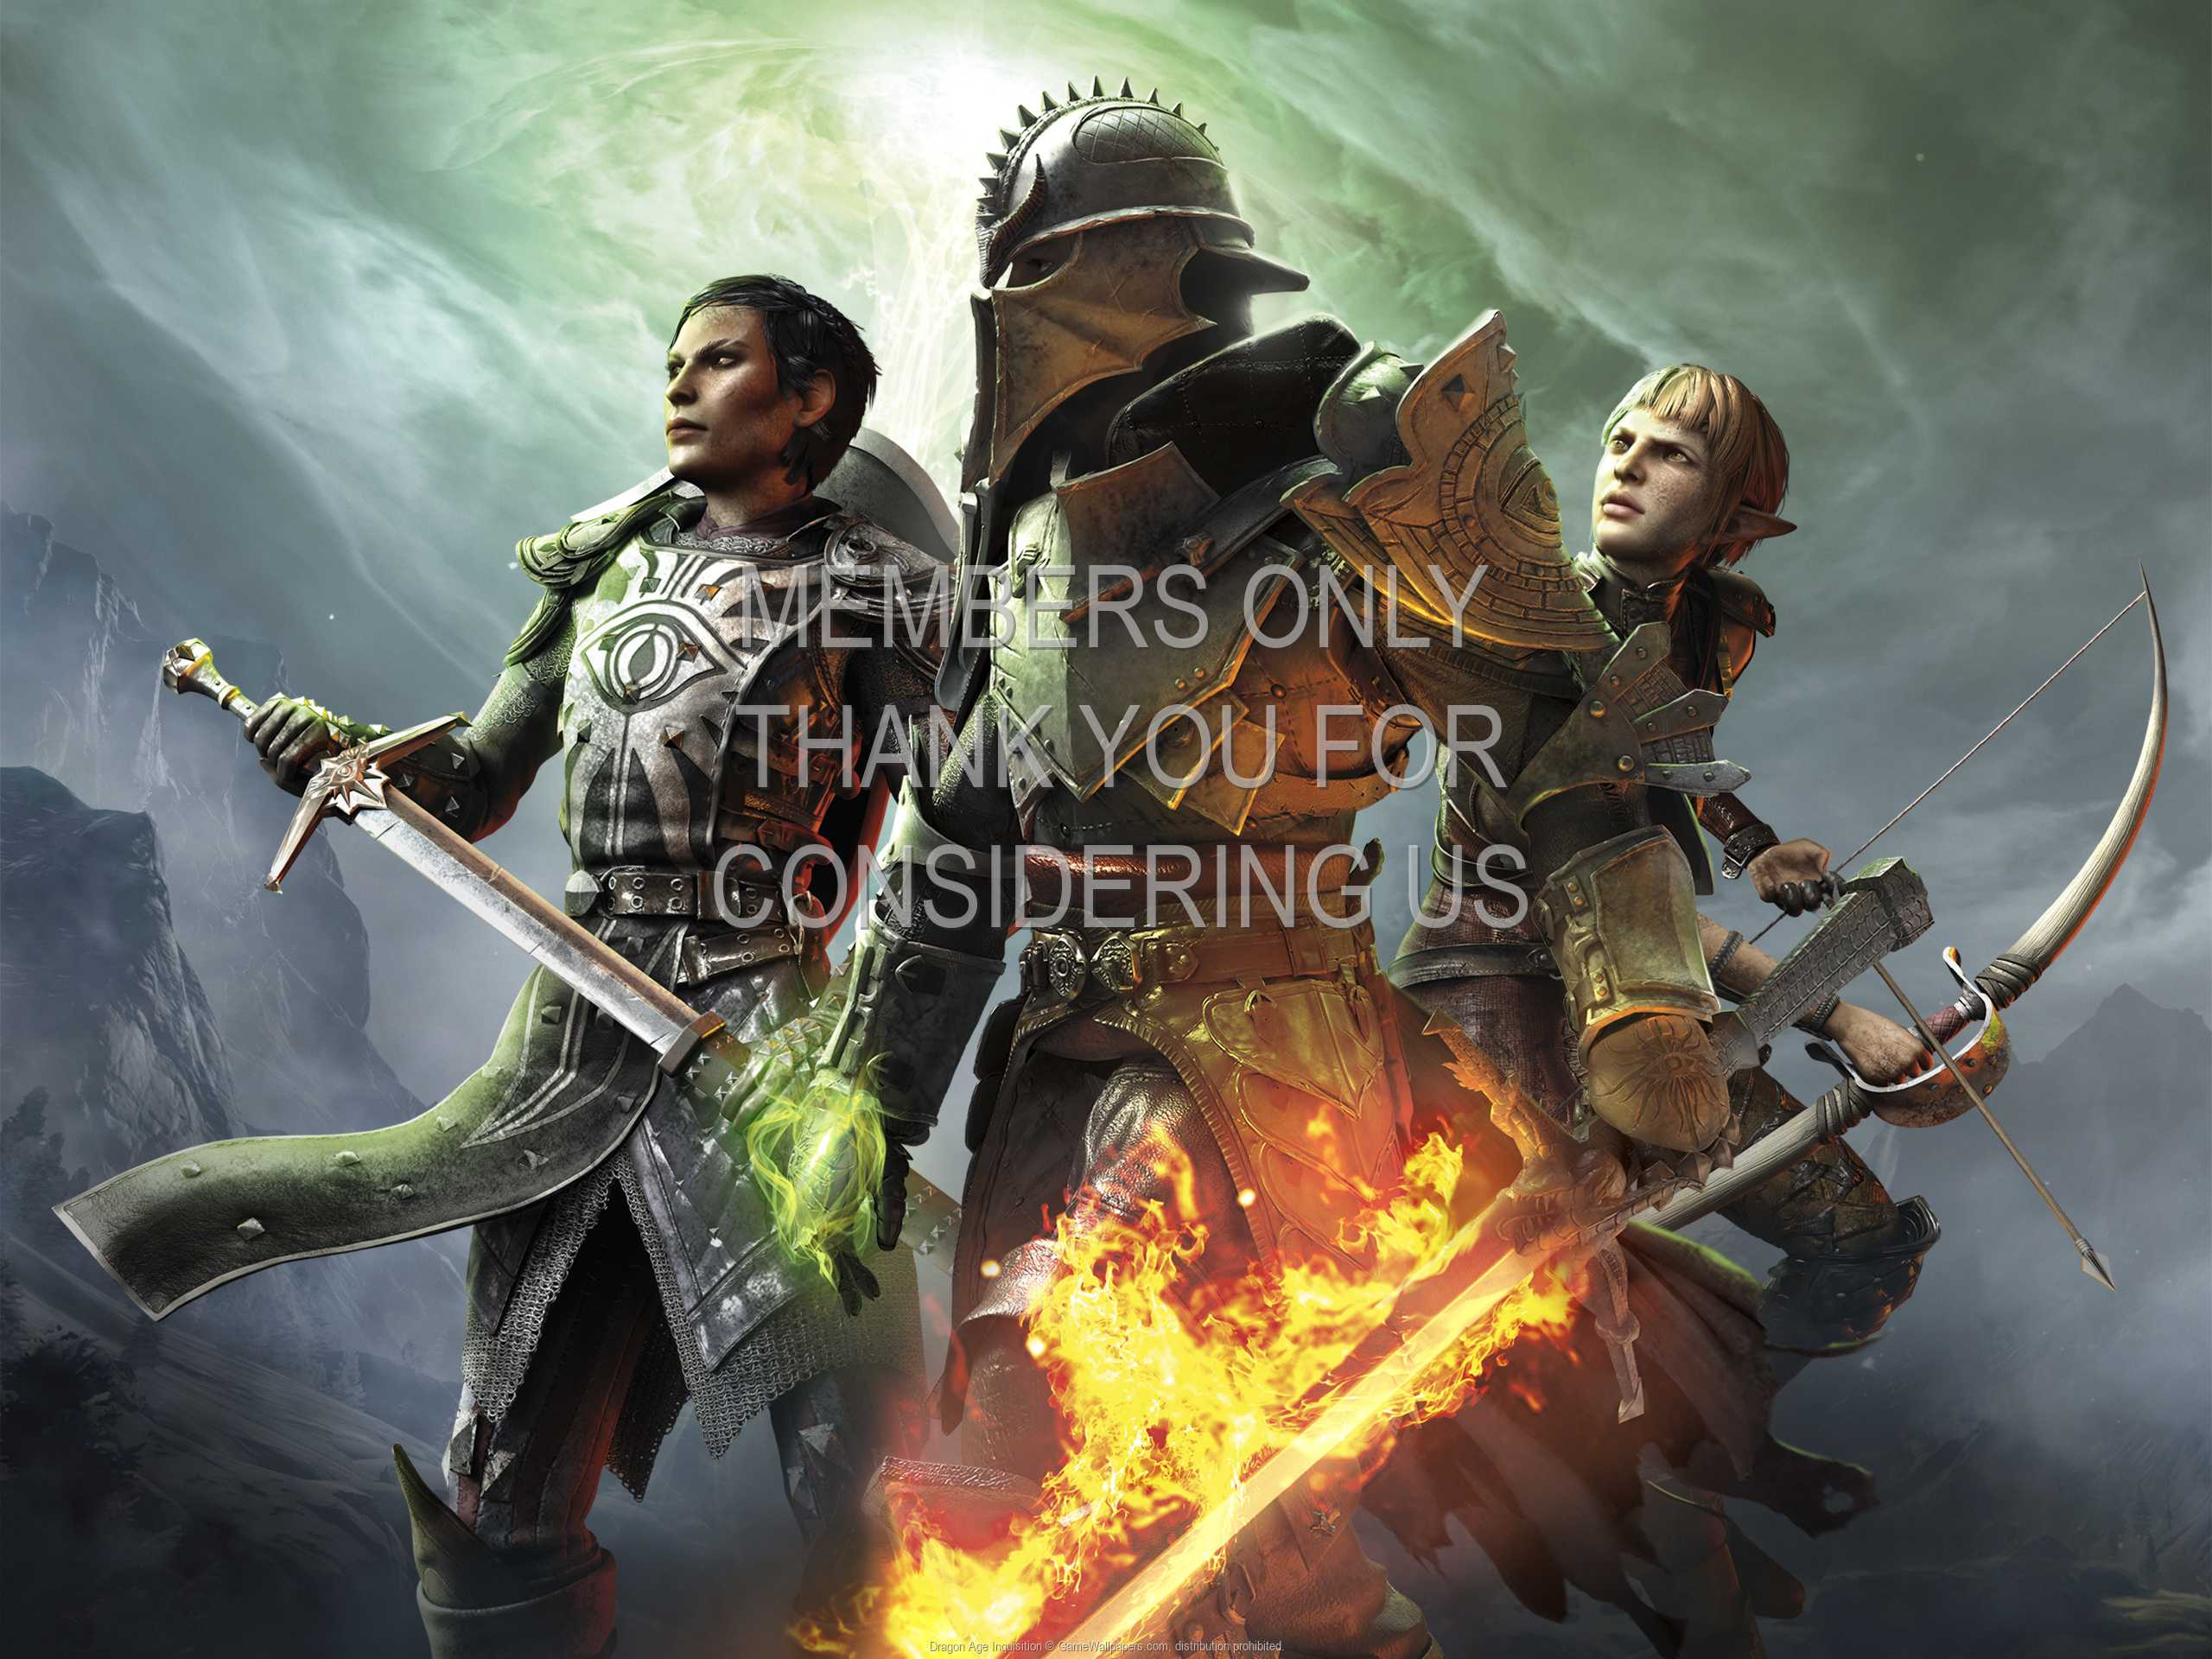 Dragon Age: Inquisition 1080p Horizontal Mobile wallpaper or background 08